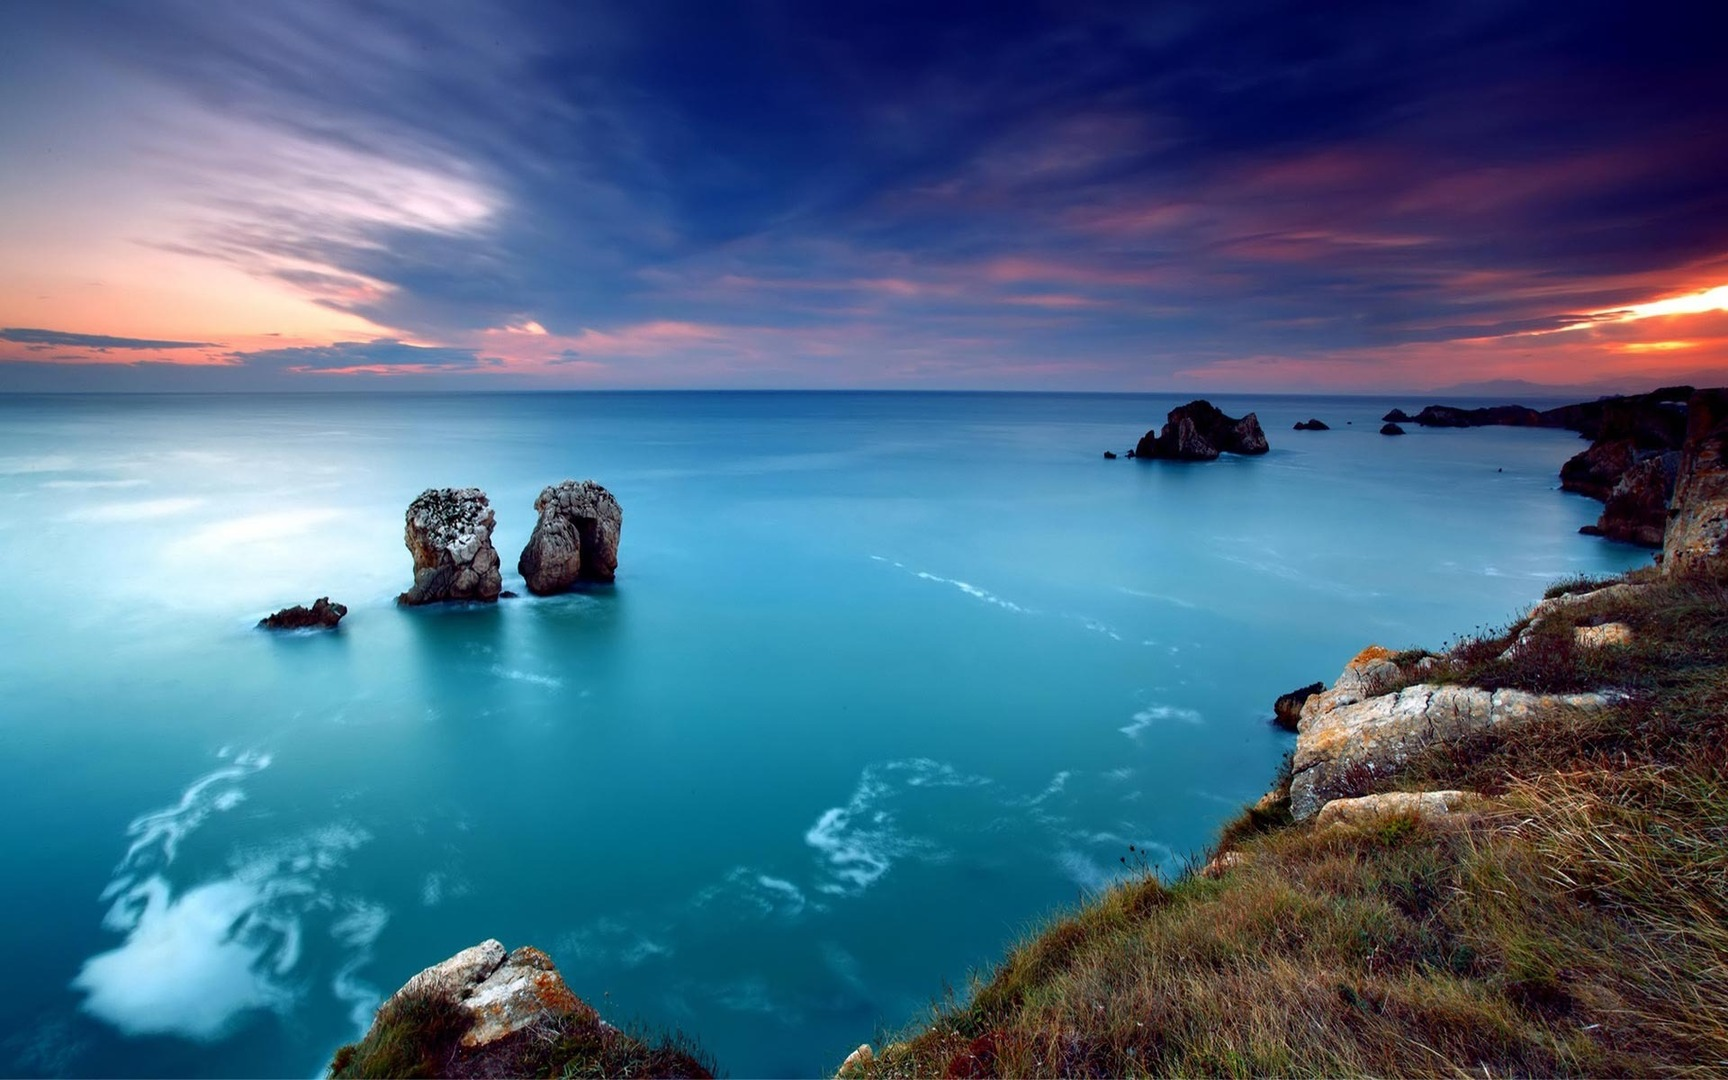 Northern Sea HD Beach Wallpapers 1080p HD Wallpapers Source 1728x1080